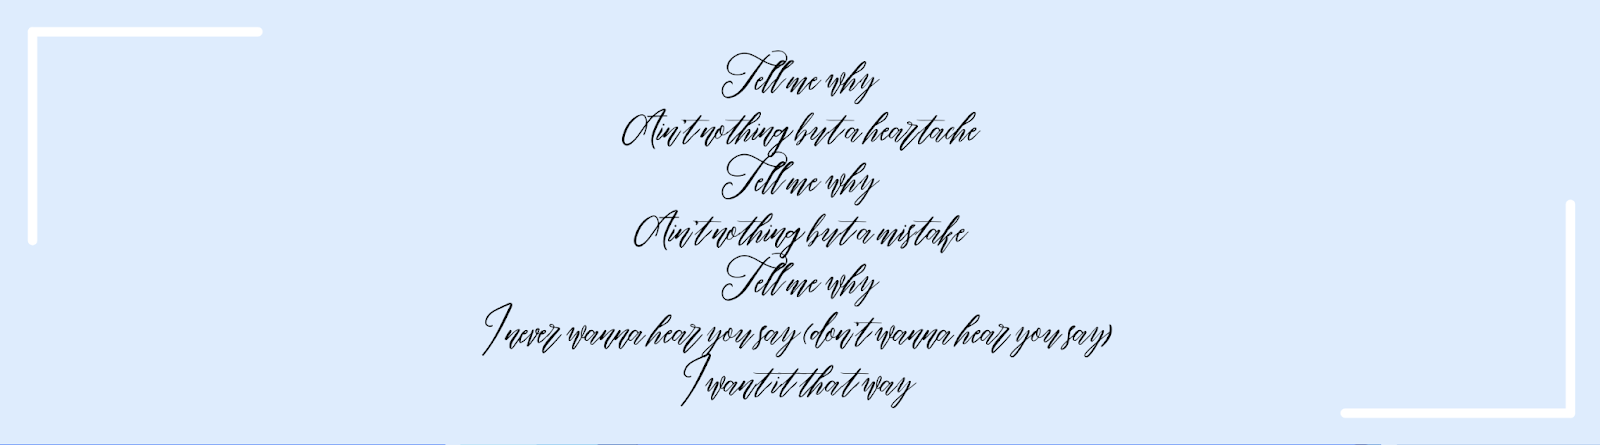 Backstreet Boys song, 'I Want It That Way.'as an email font example